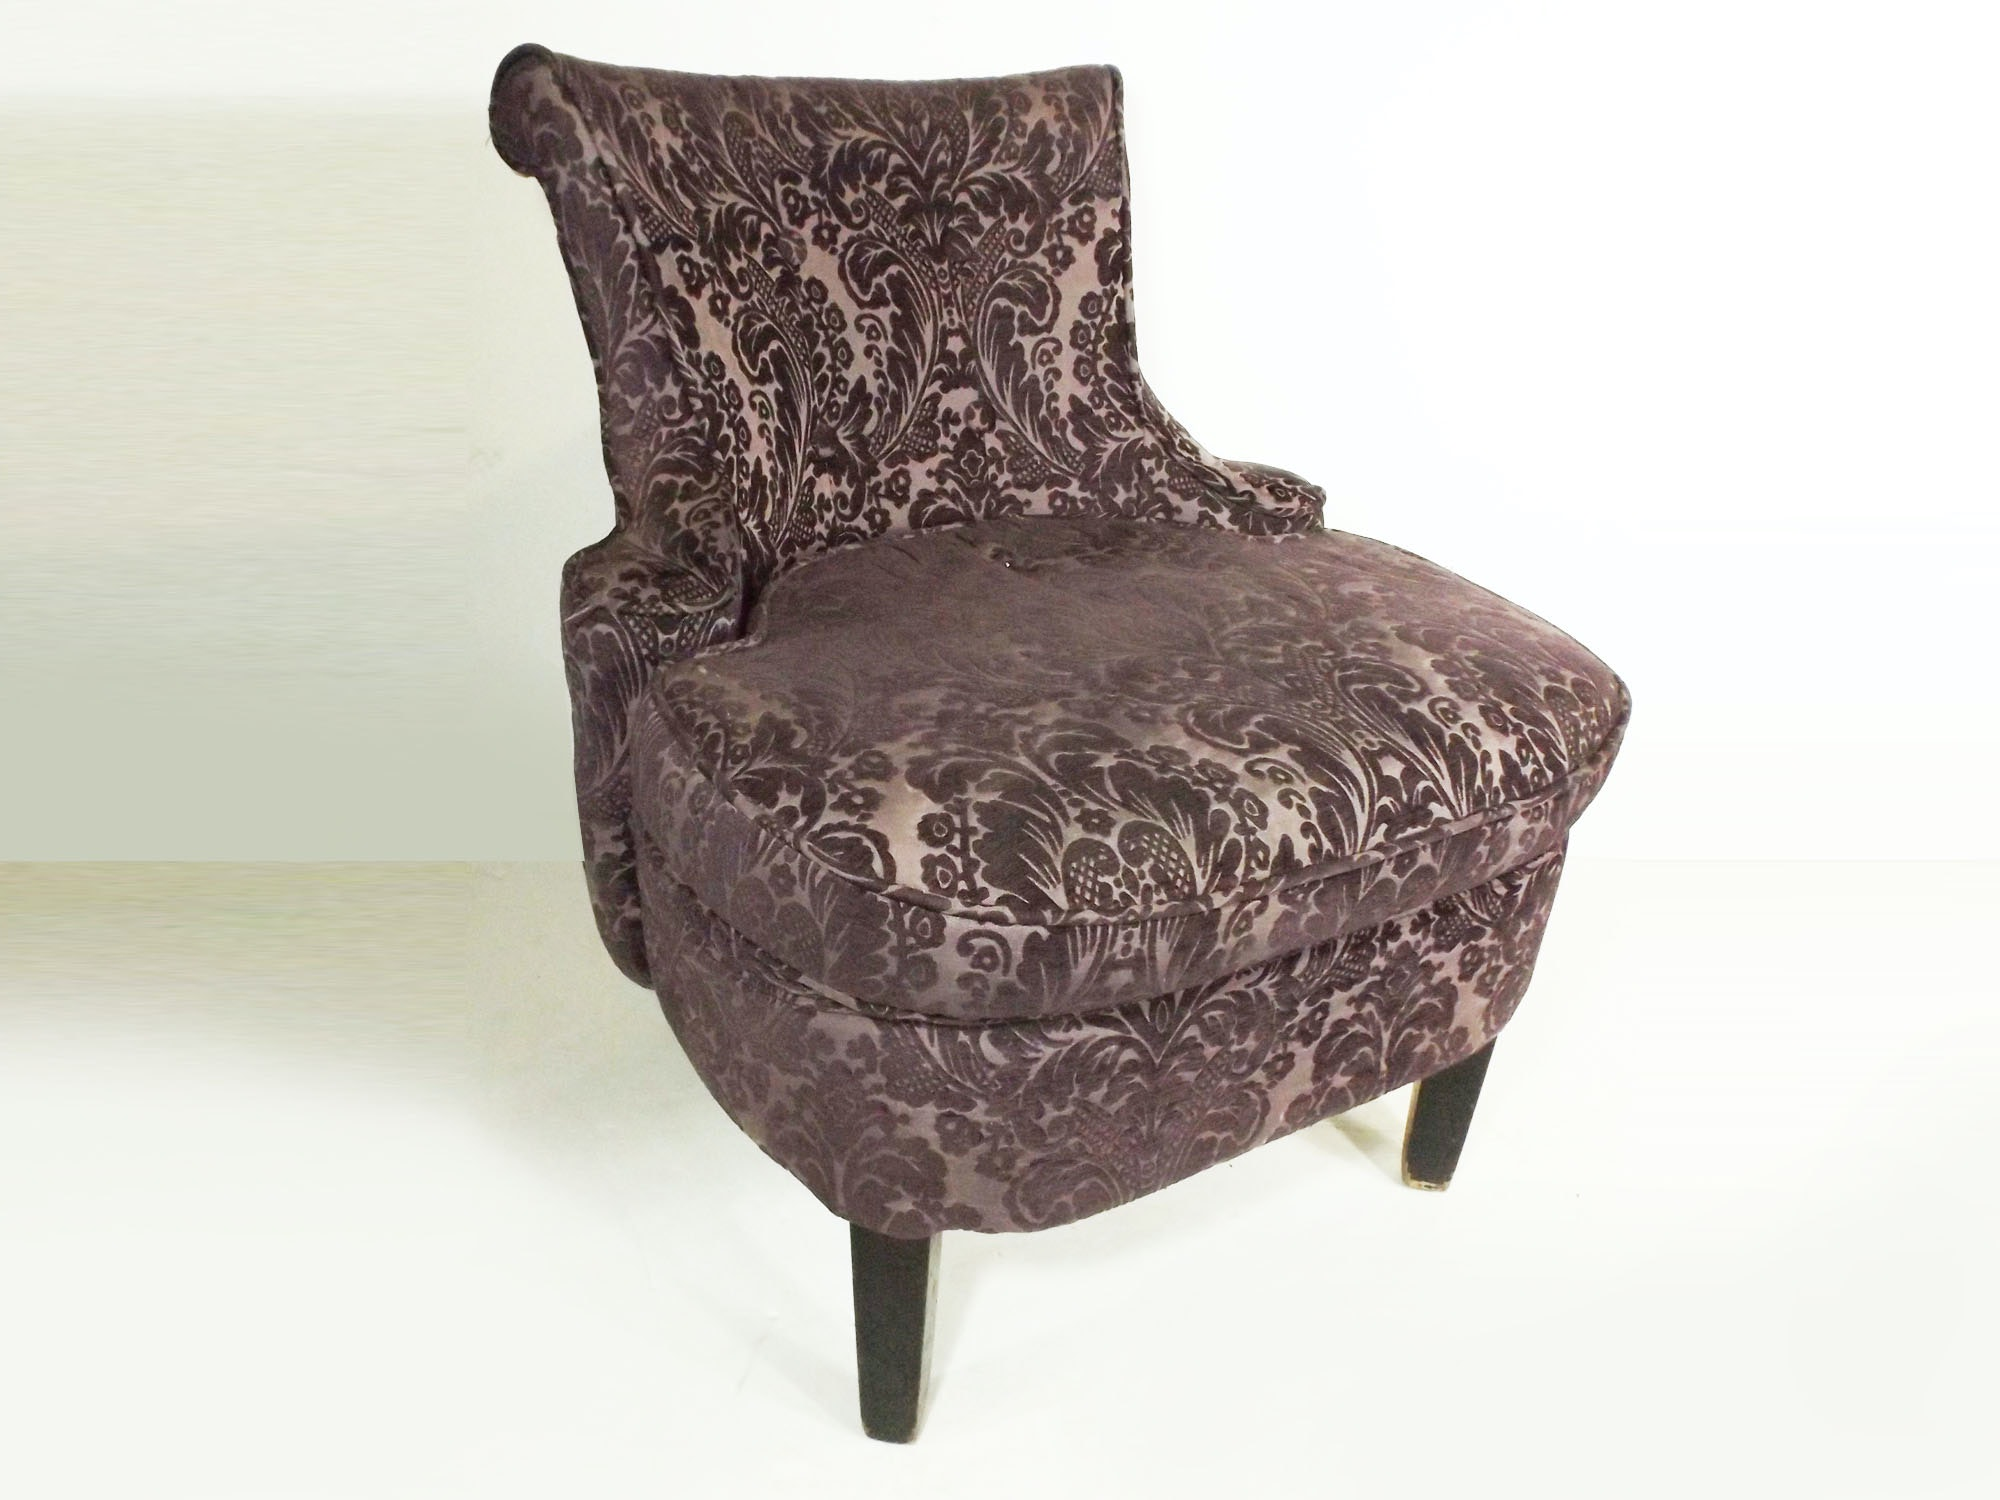 Chic French Style Chair in Eggplant Damask